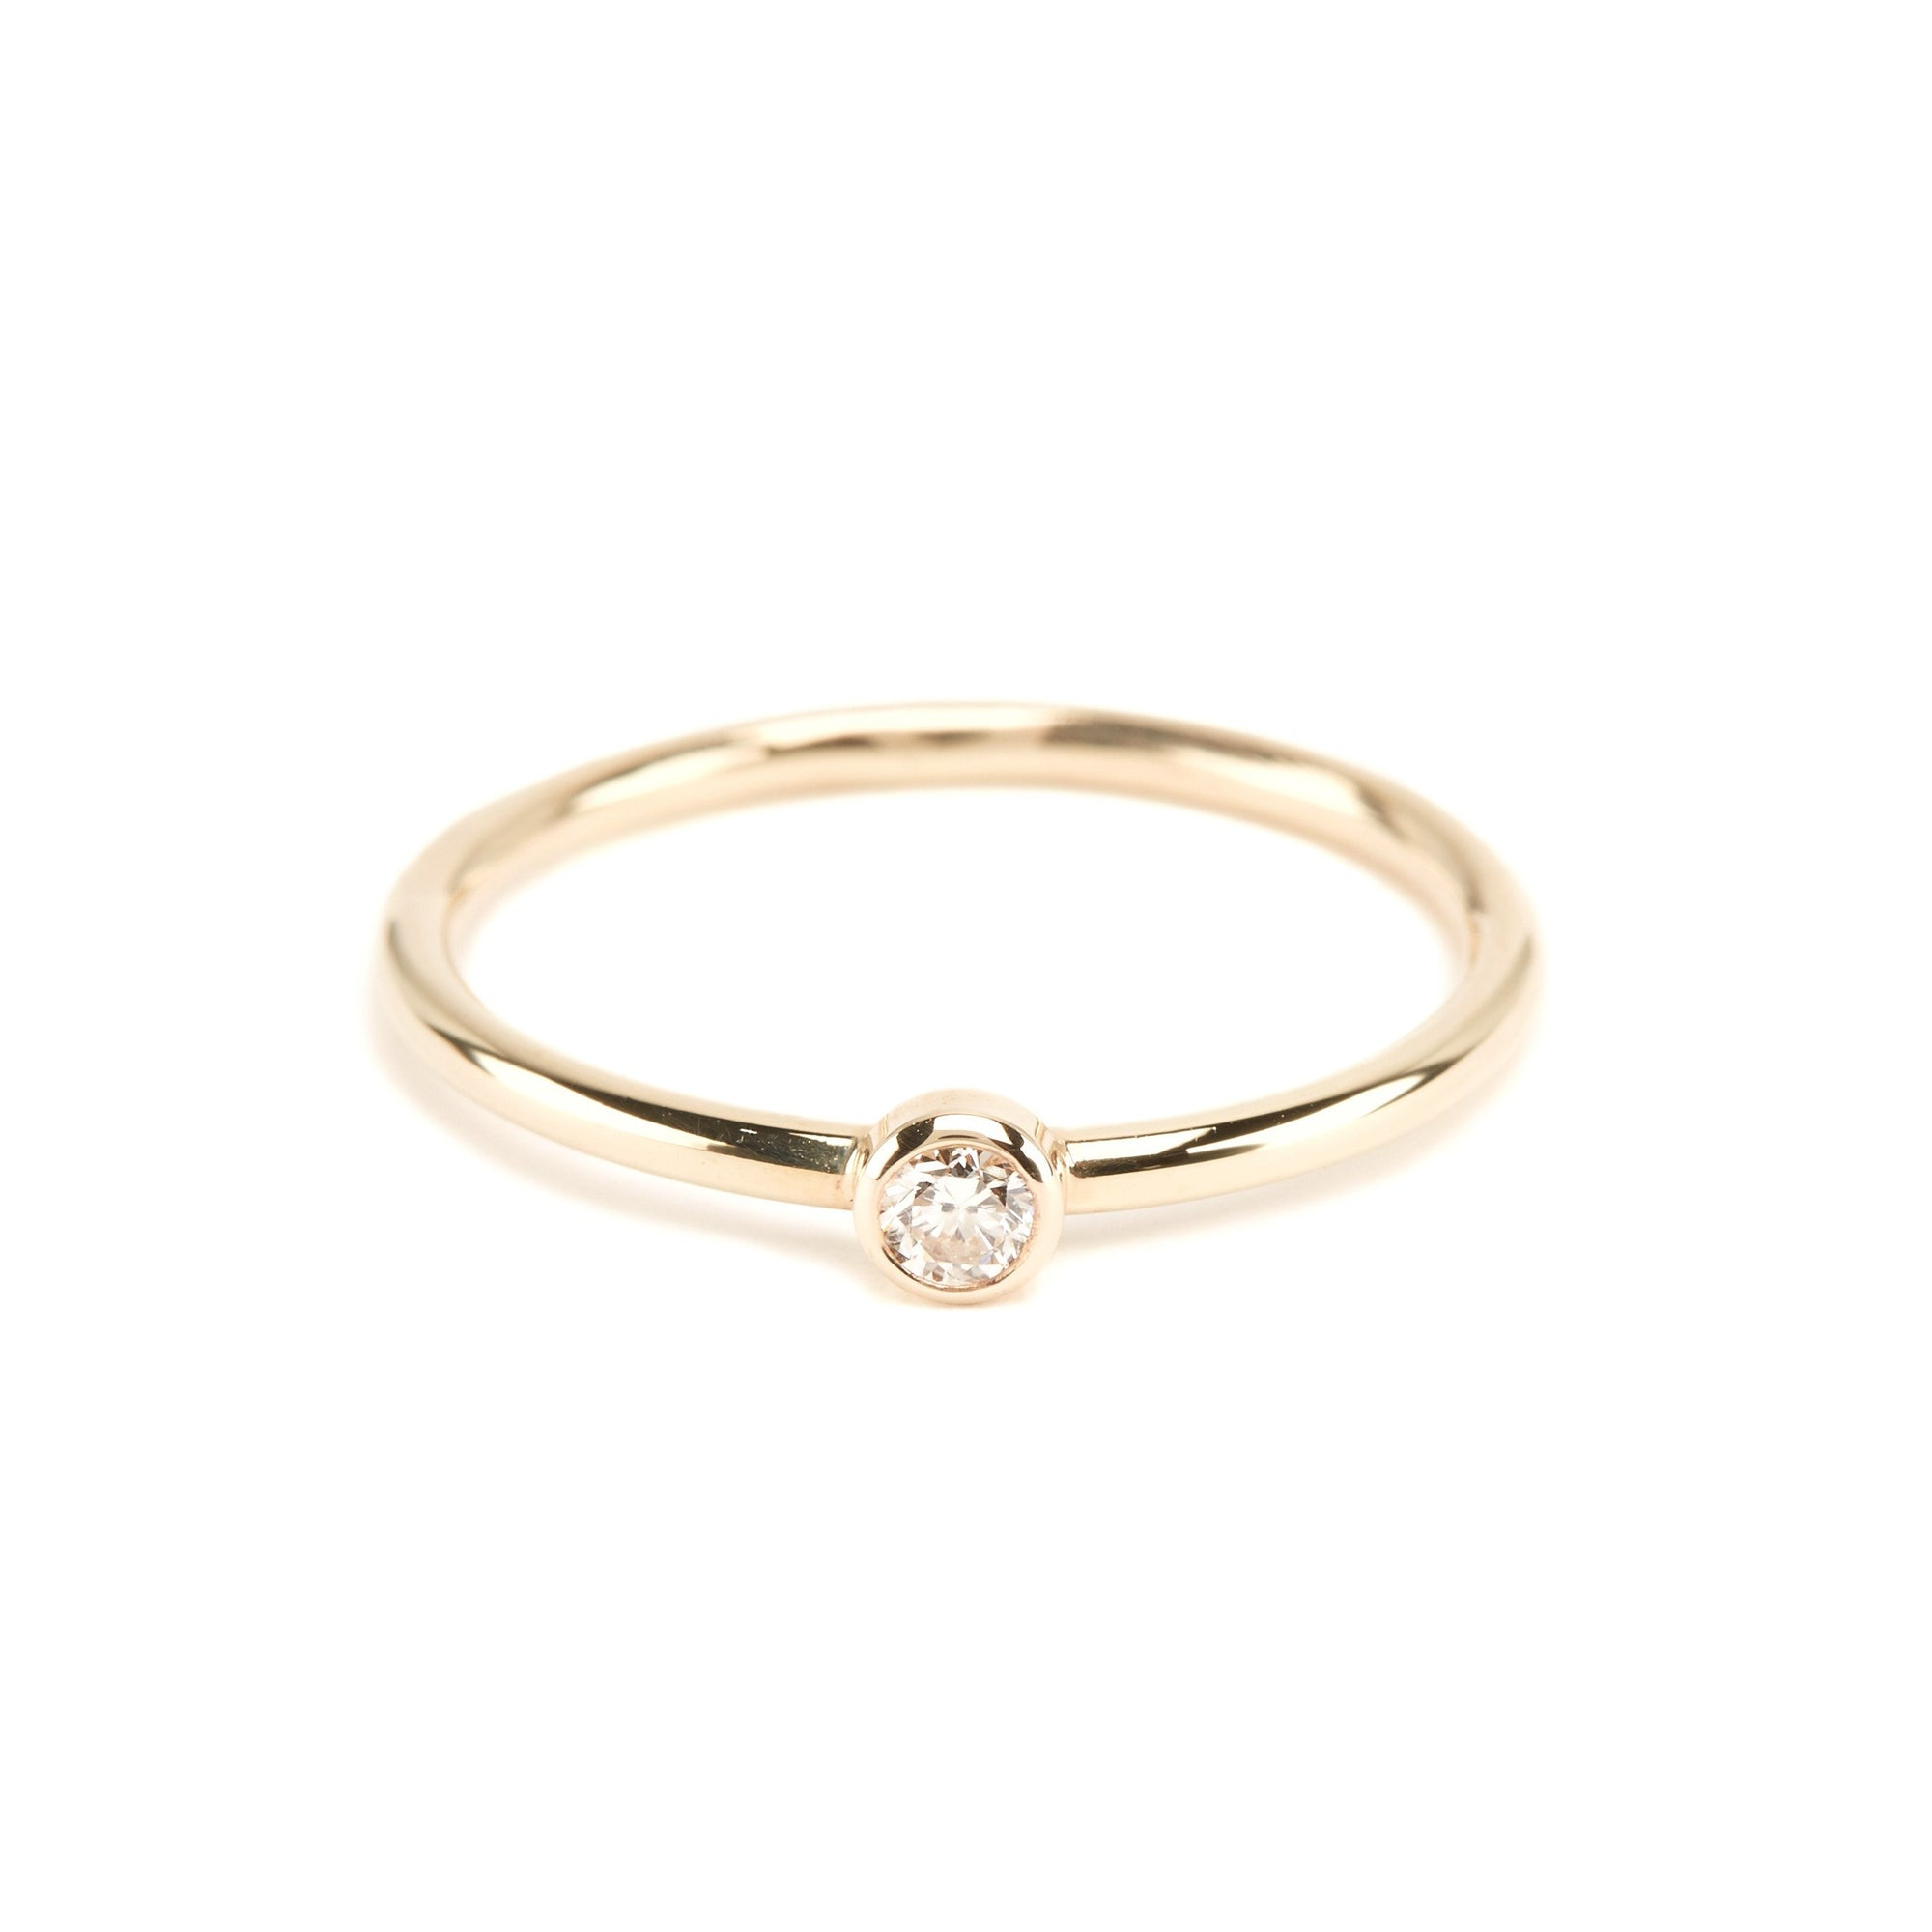 Neo Diamond Ring (Large) - 9ct Gold